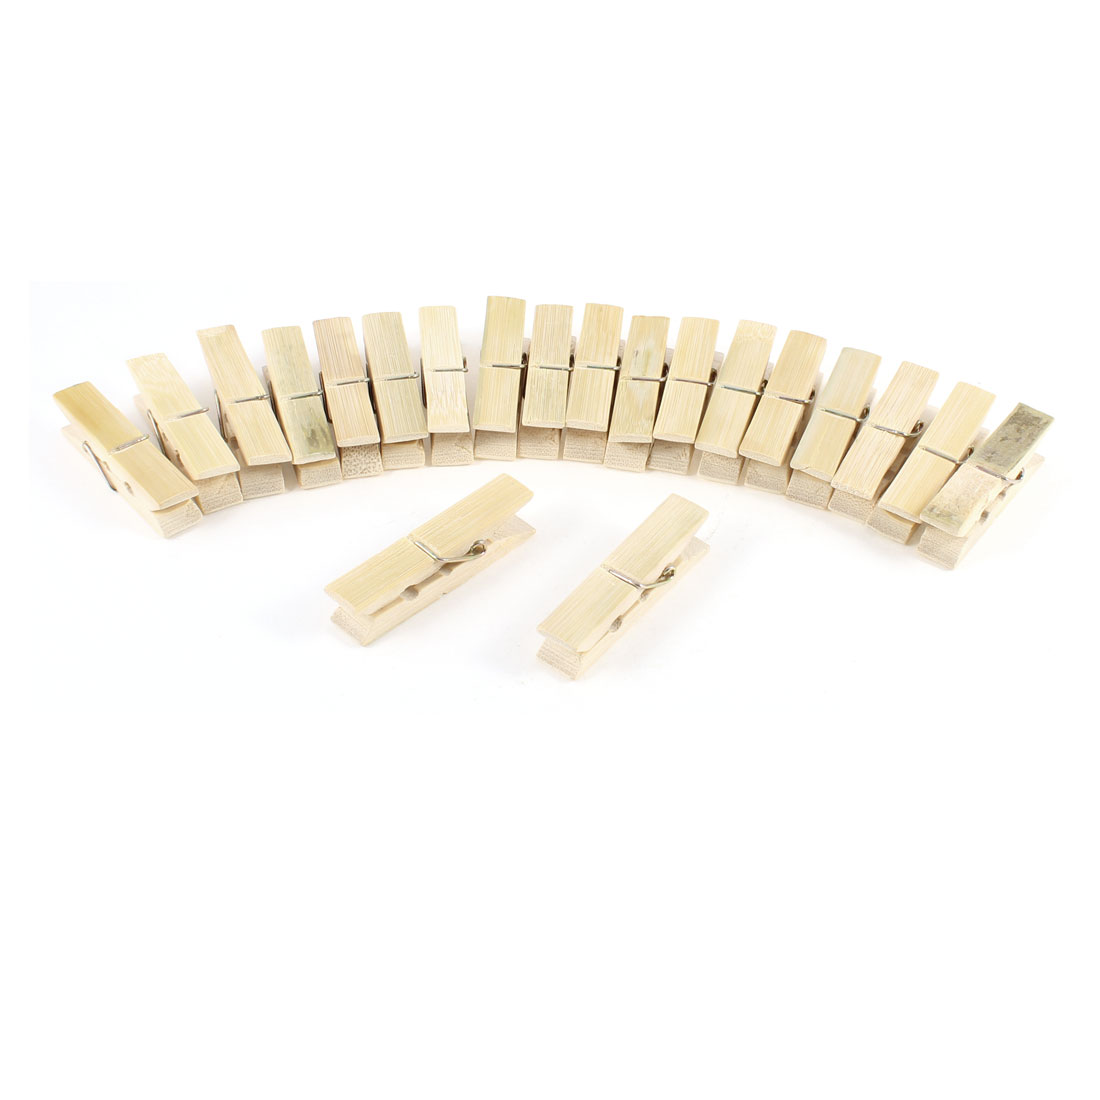 20 Pcs Wooden Color Bedclothes Laundry Coats Bamboo Clips Clamps